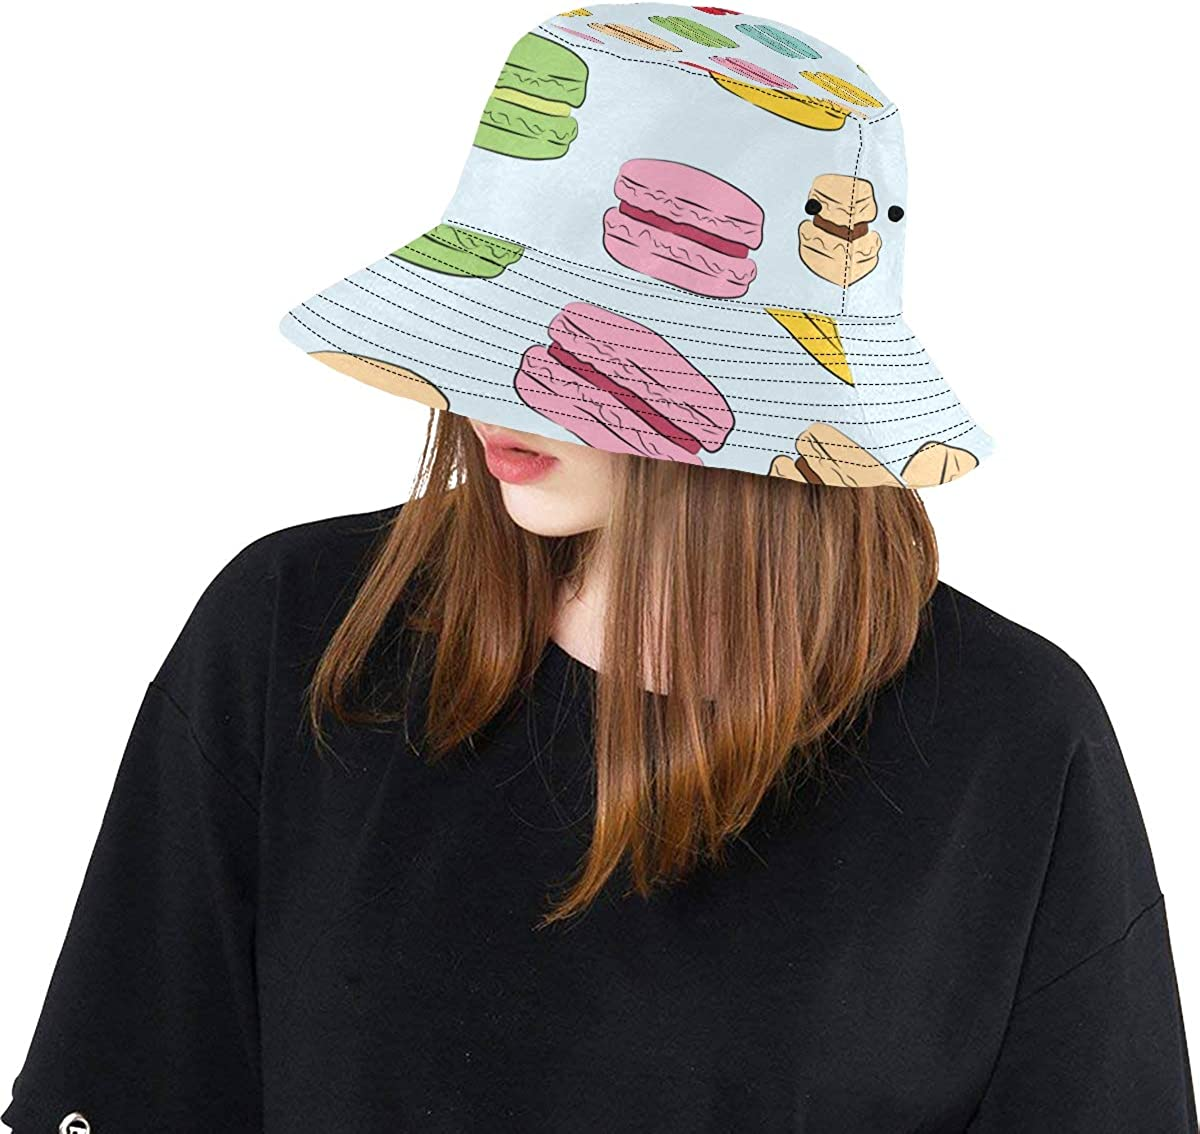 Pink Macaron Sweet Gift Summer Unisex Fishing Sun Top Bucket Hats for Kid Teens Women and Men with Packable Fisherman Cap for Outdoor Baseball Sport Picnic